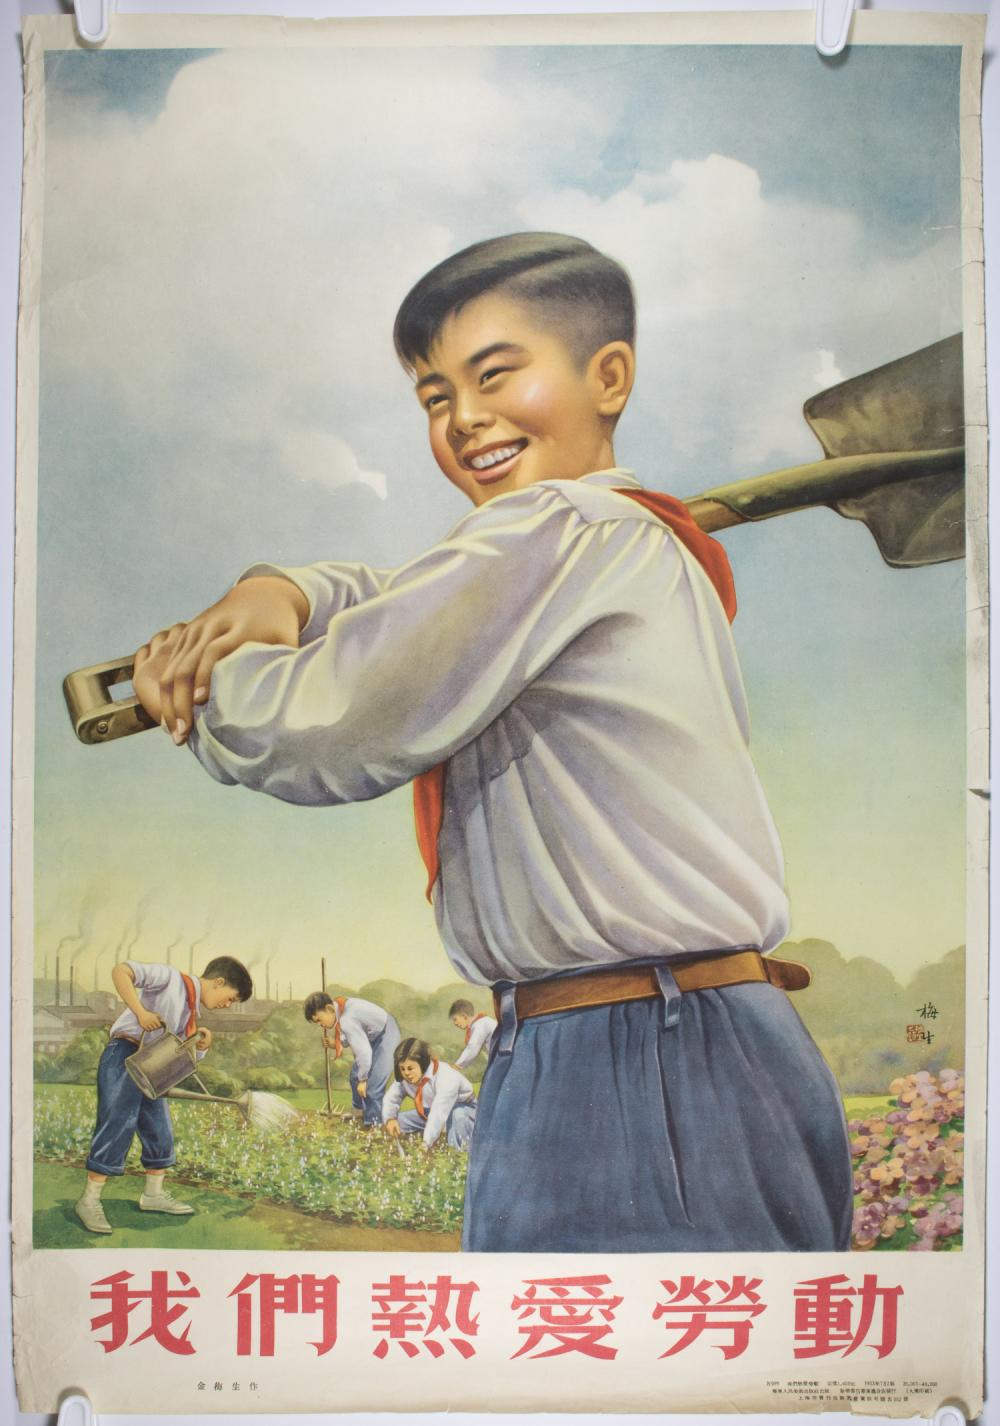 CHINESE 'WE LOVE LABOR' POSTER